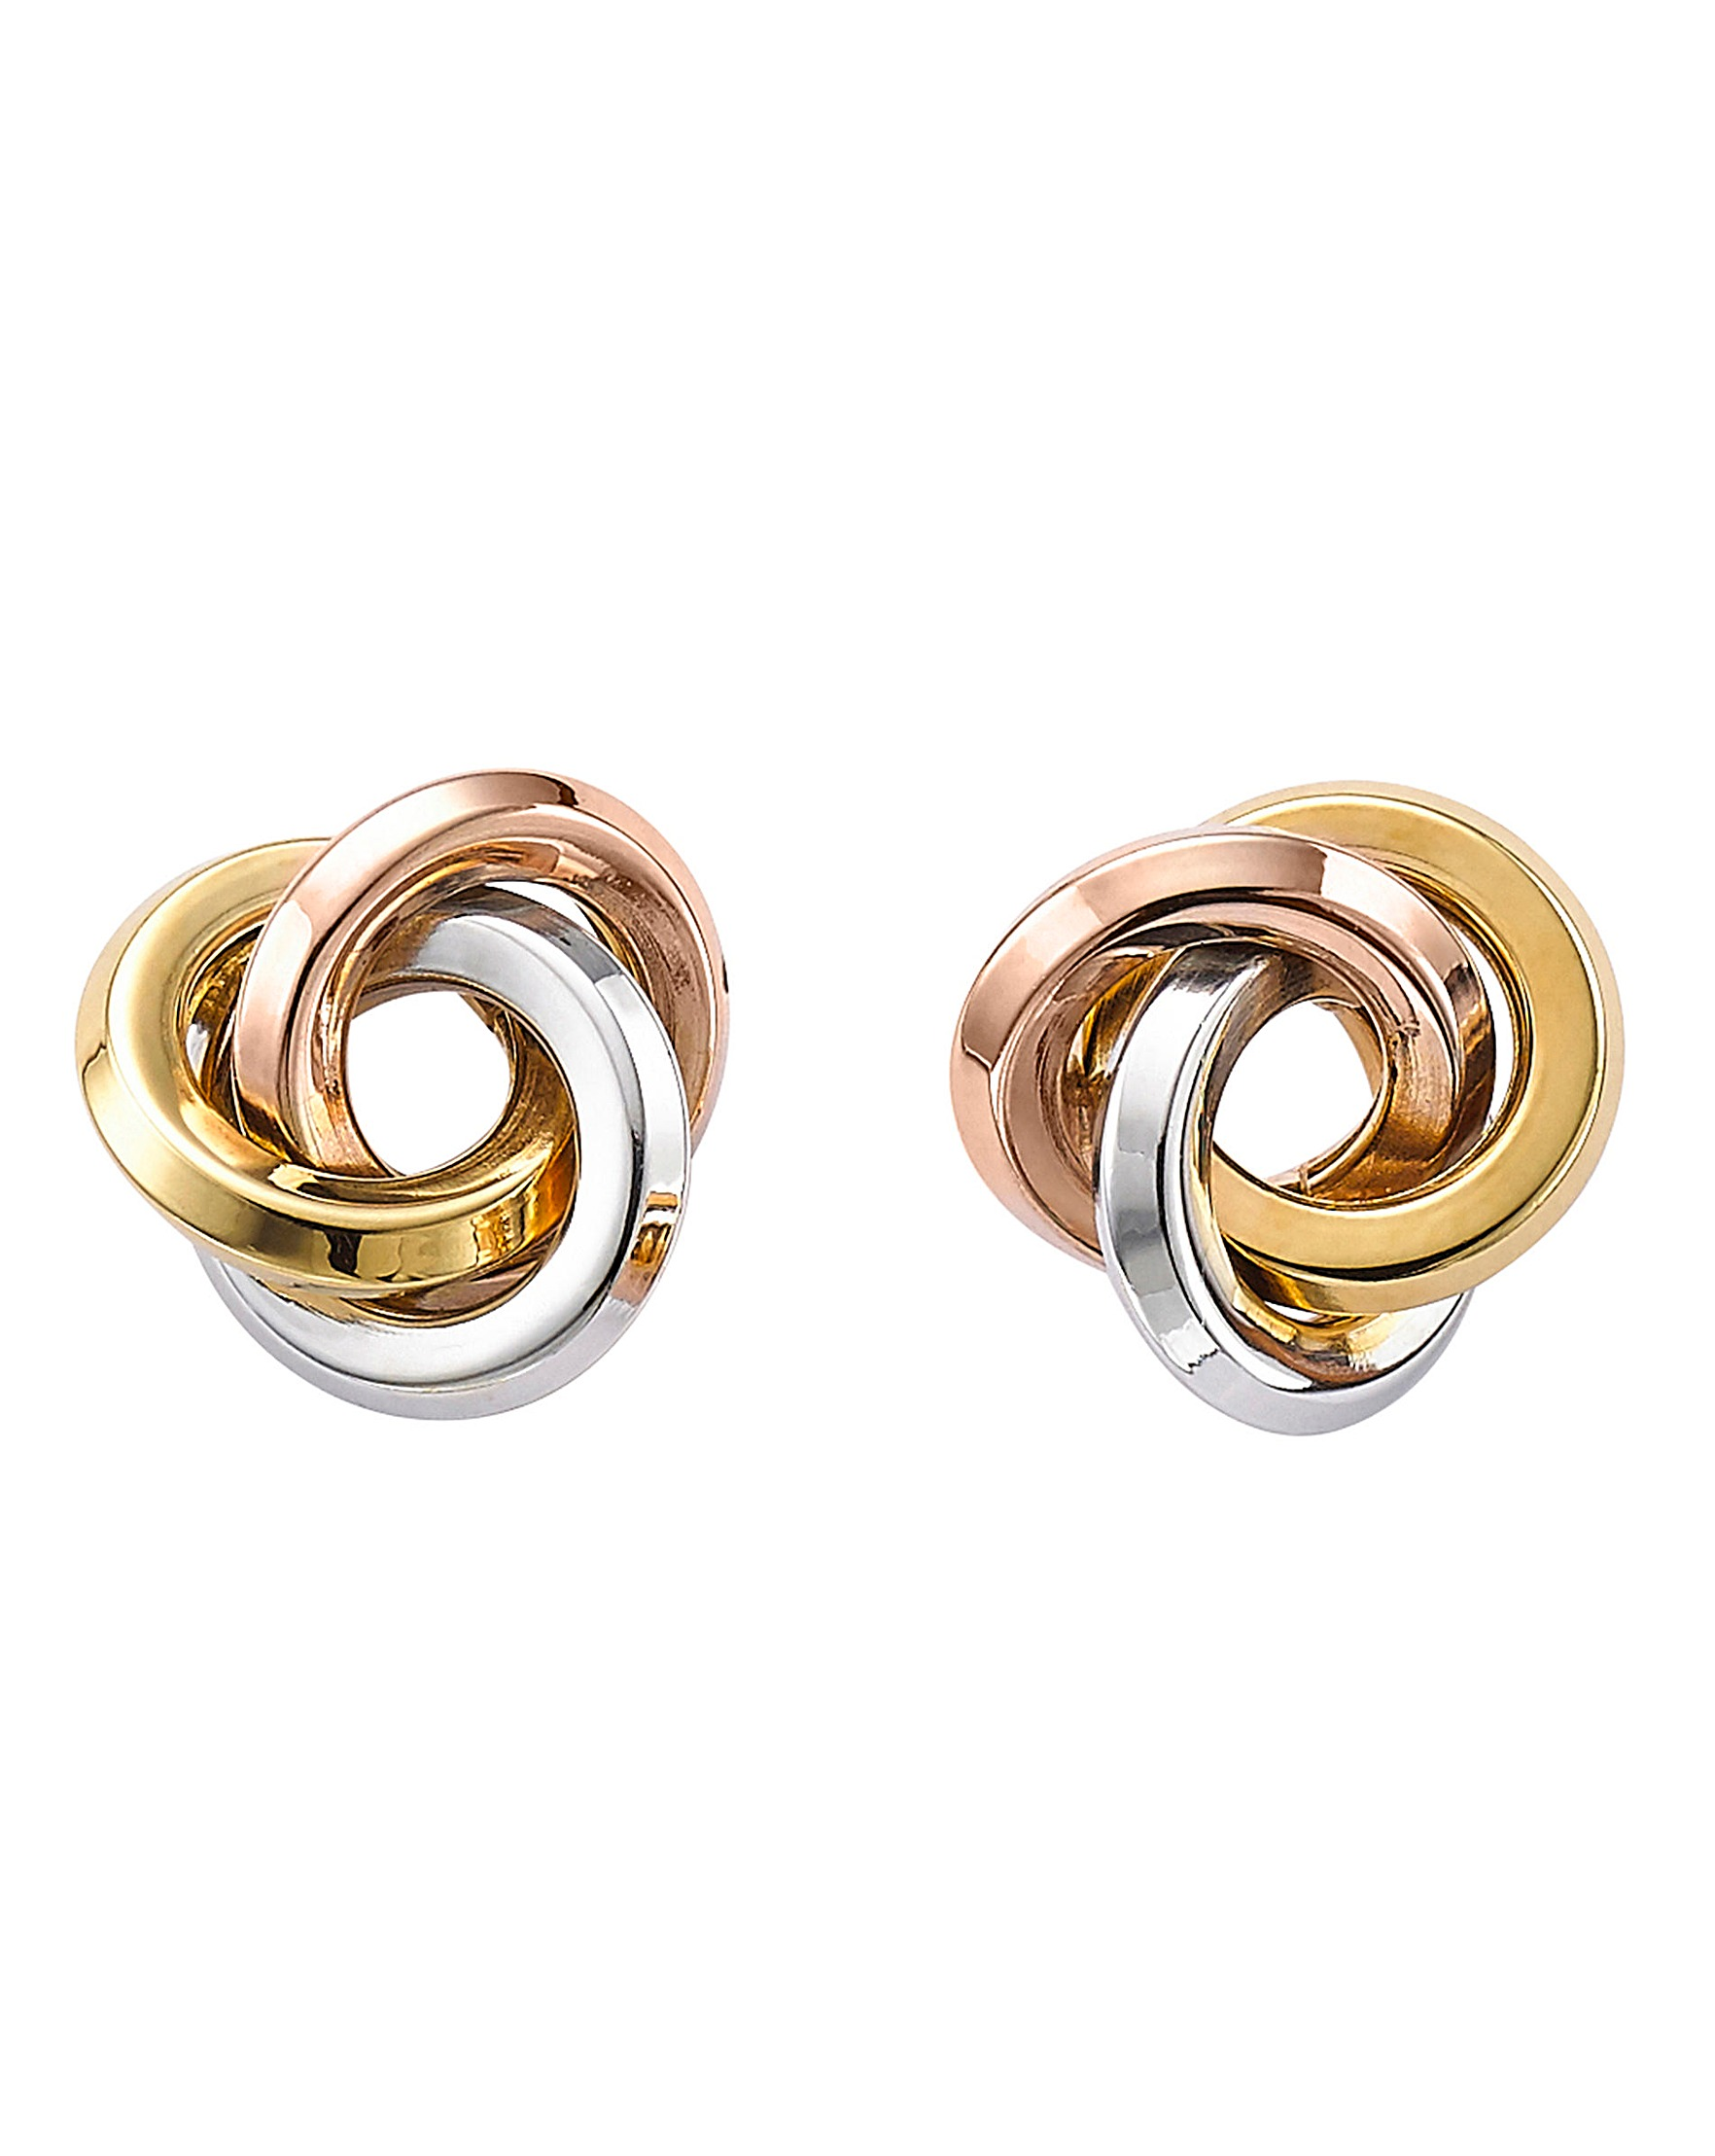 b27435a96 9 Carat Gold 3-Tone Knot Stud Earrings | Oxendales